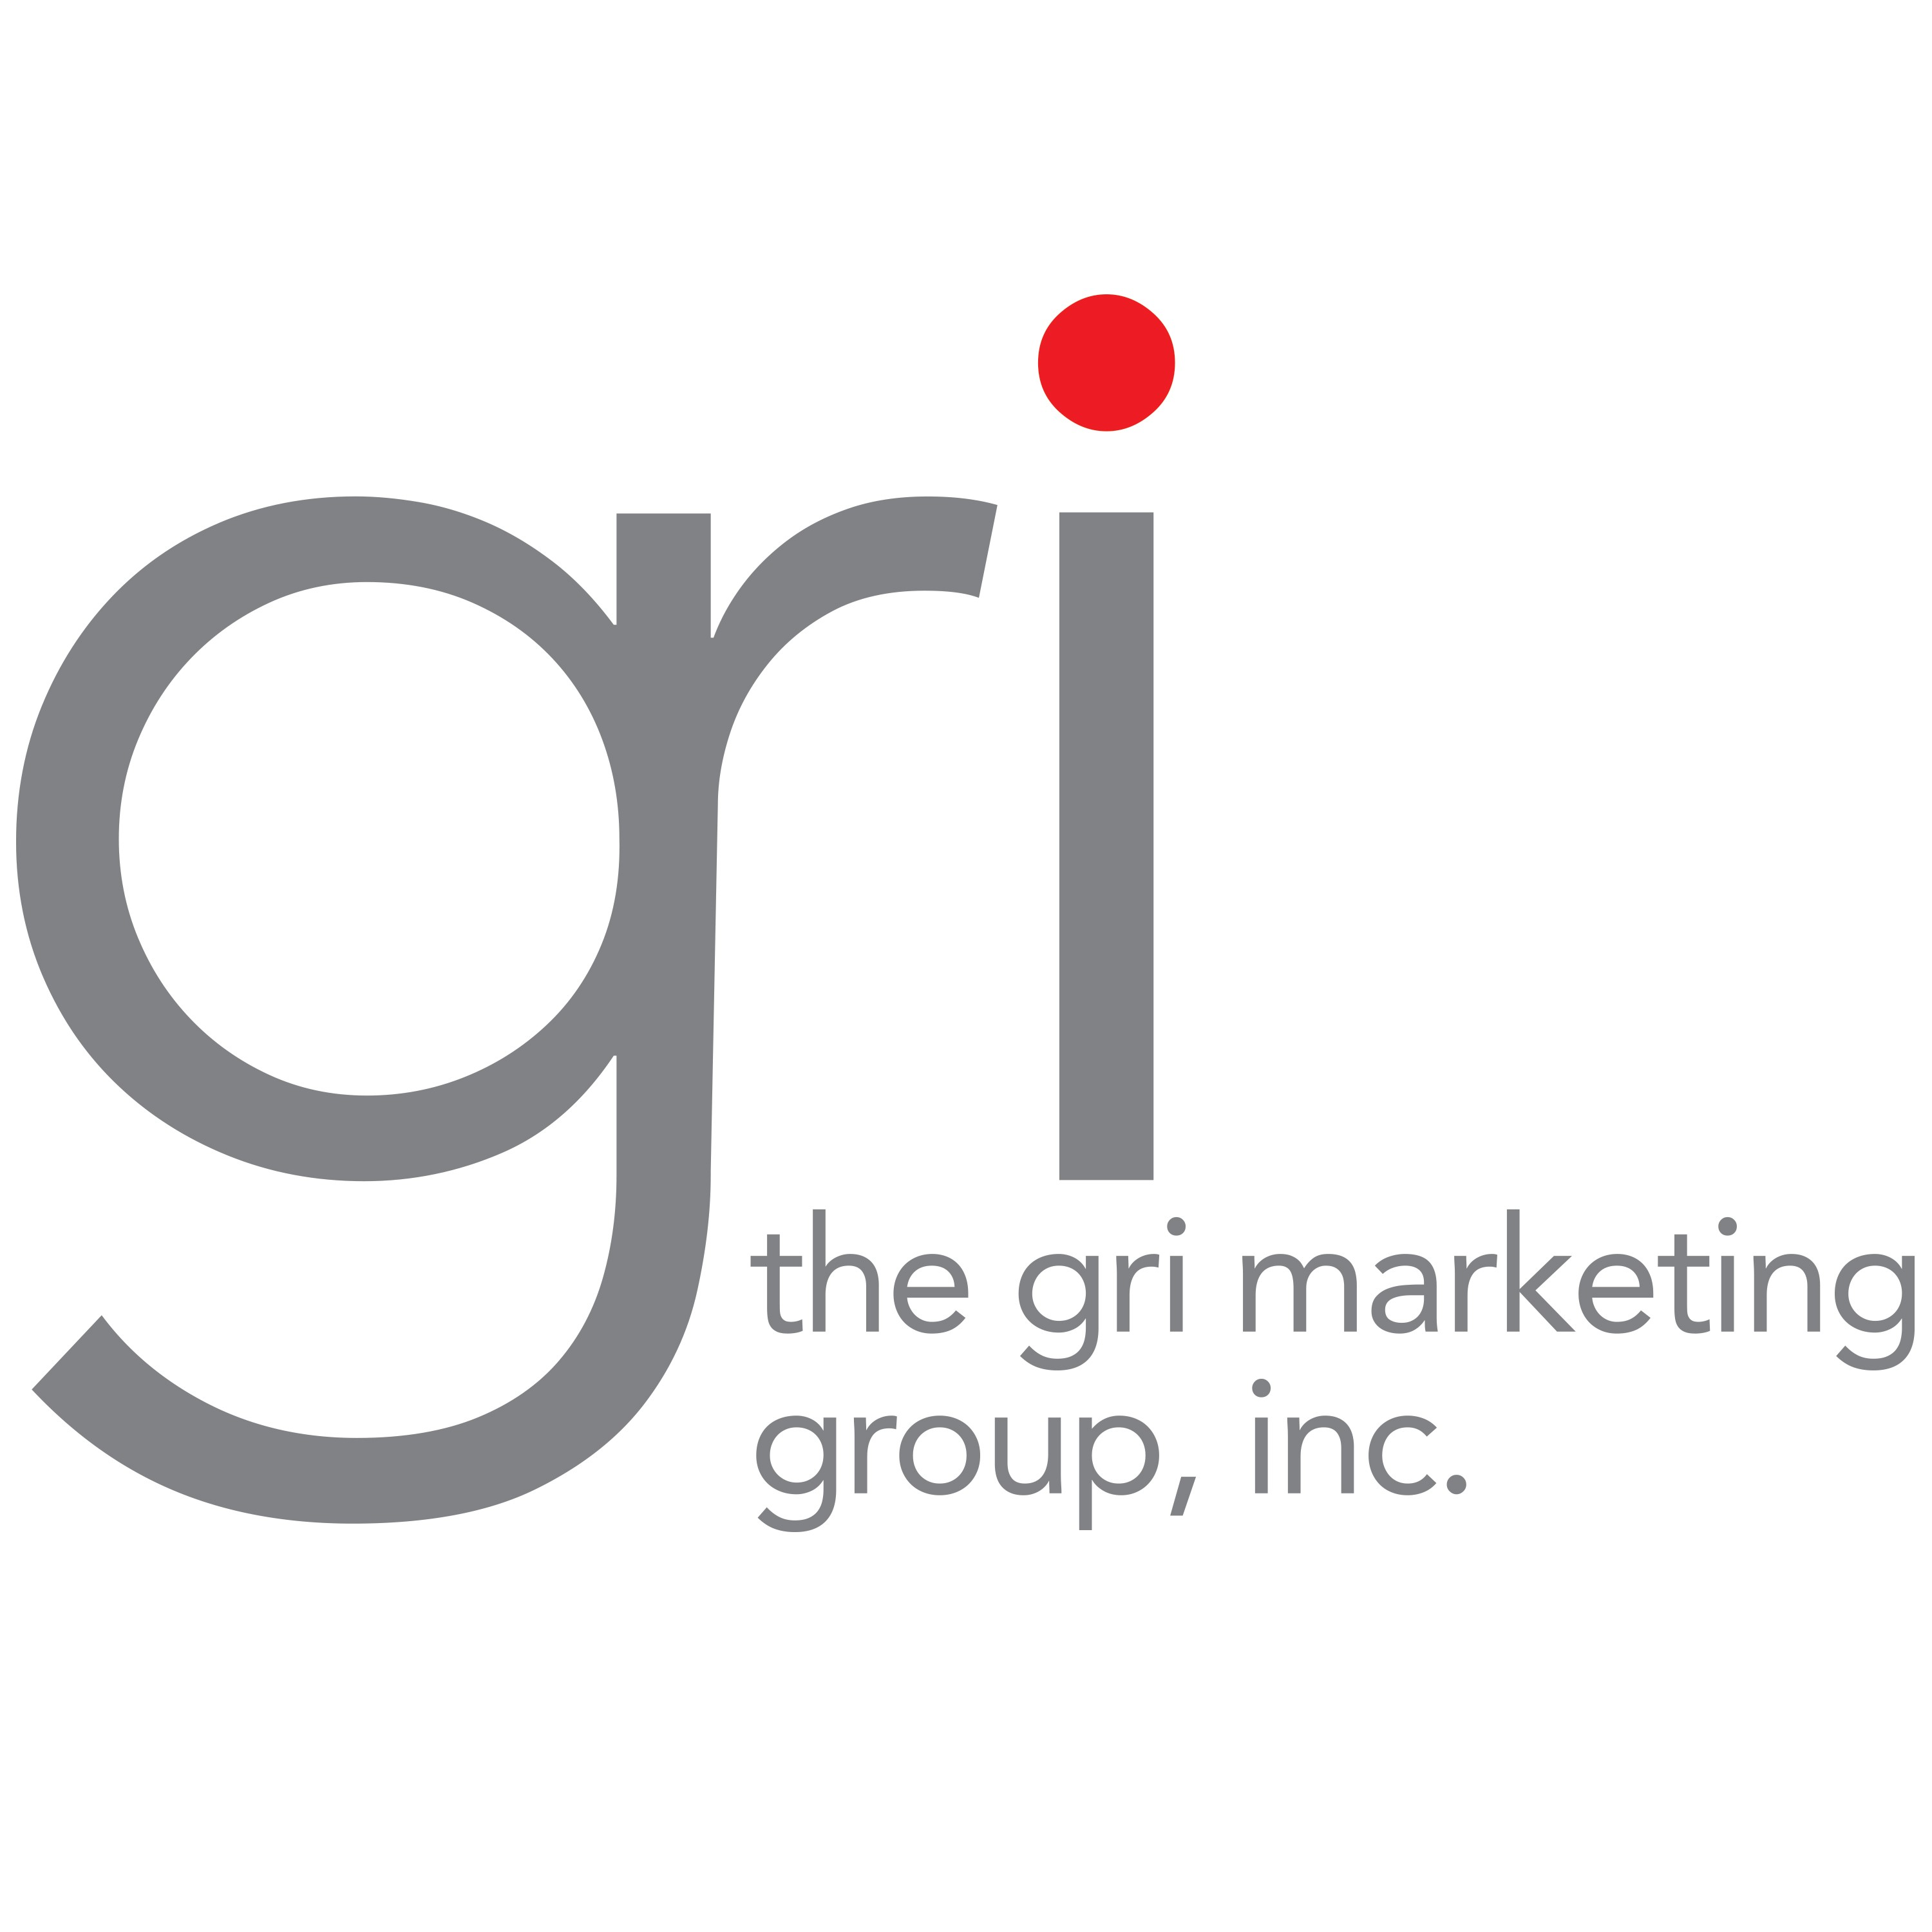 The GRI Marketing Group